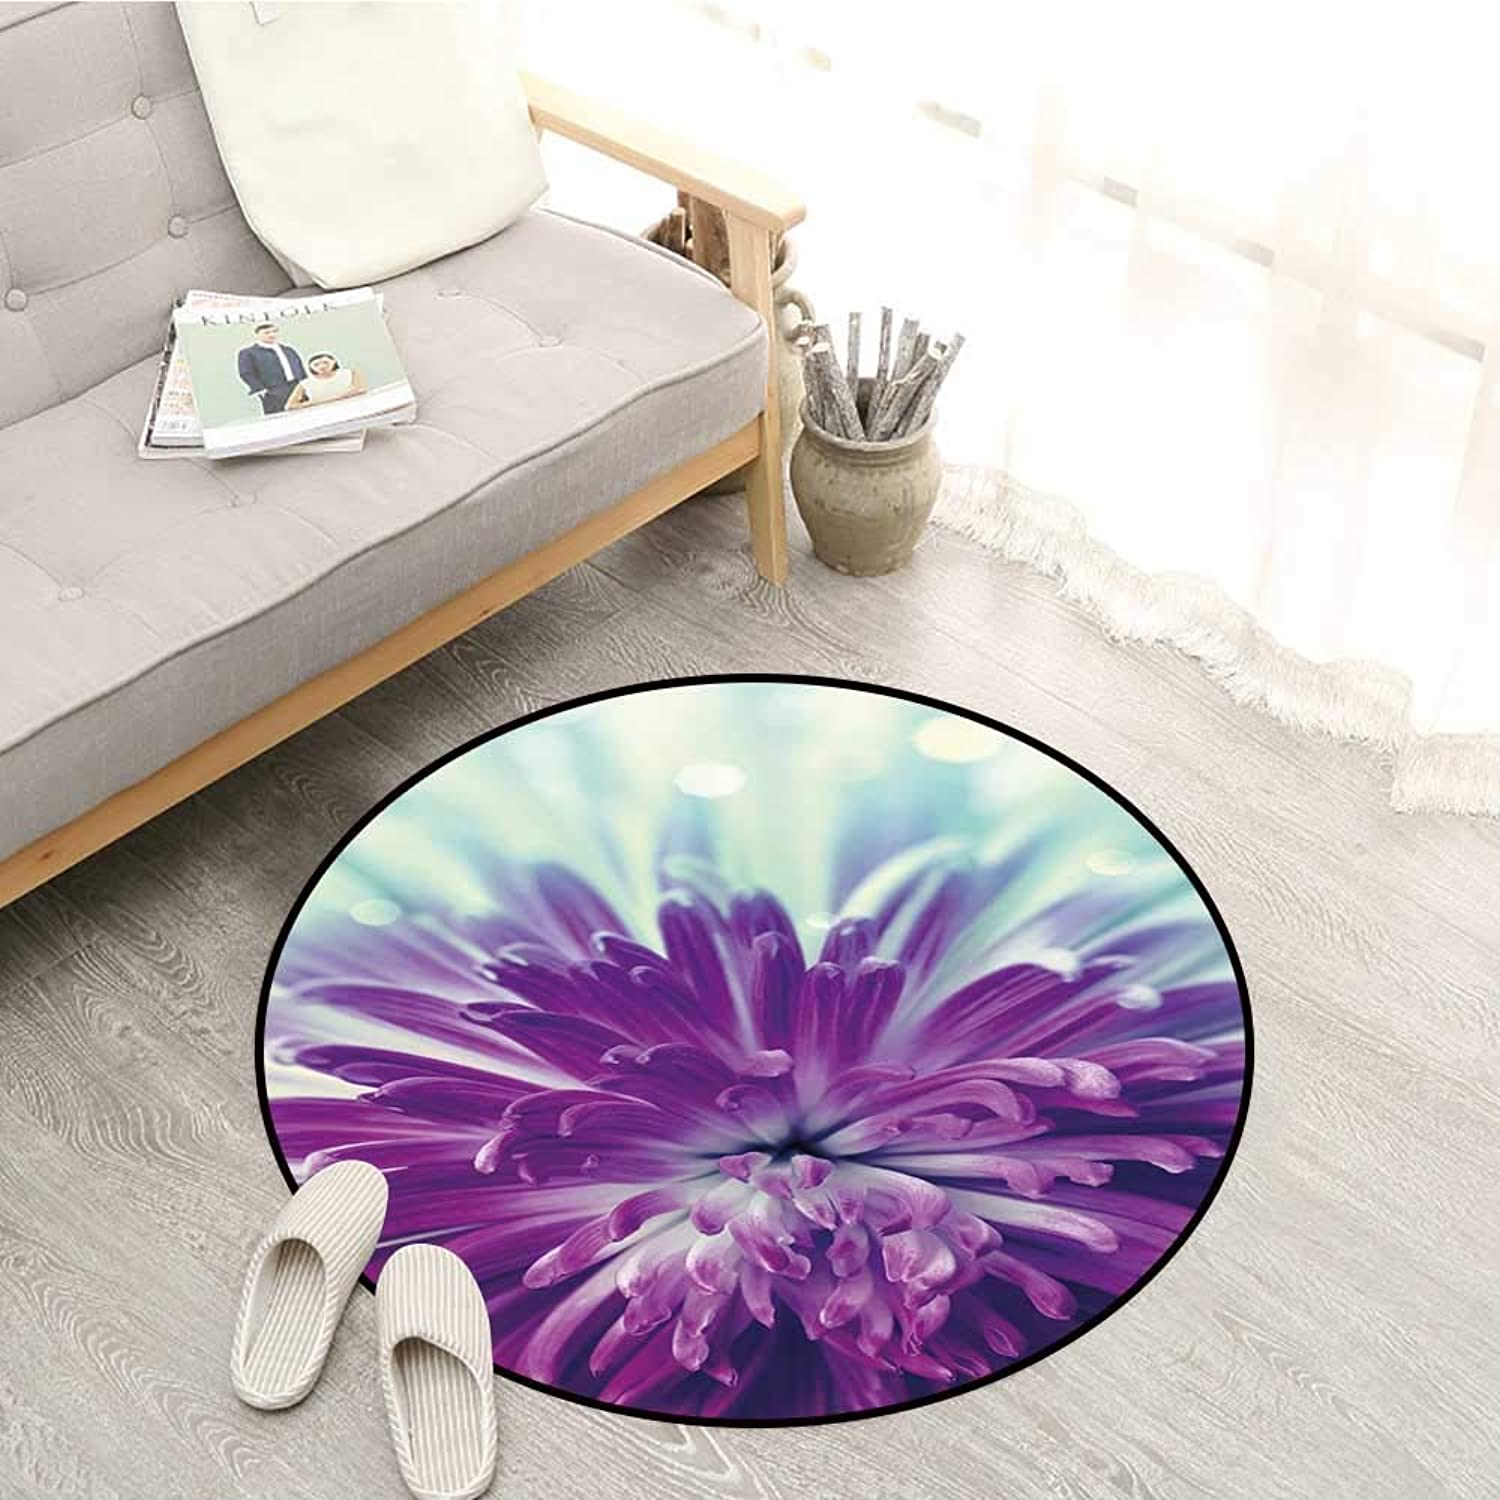 Dahlia Living Room Round Rugs Radiant purple colord Blooming Dahlia Close Up with Petals in Pale Sunshine Sofa Coffee Table Mat 4'11  Purple Mint Green